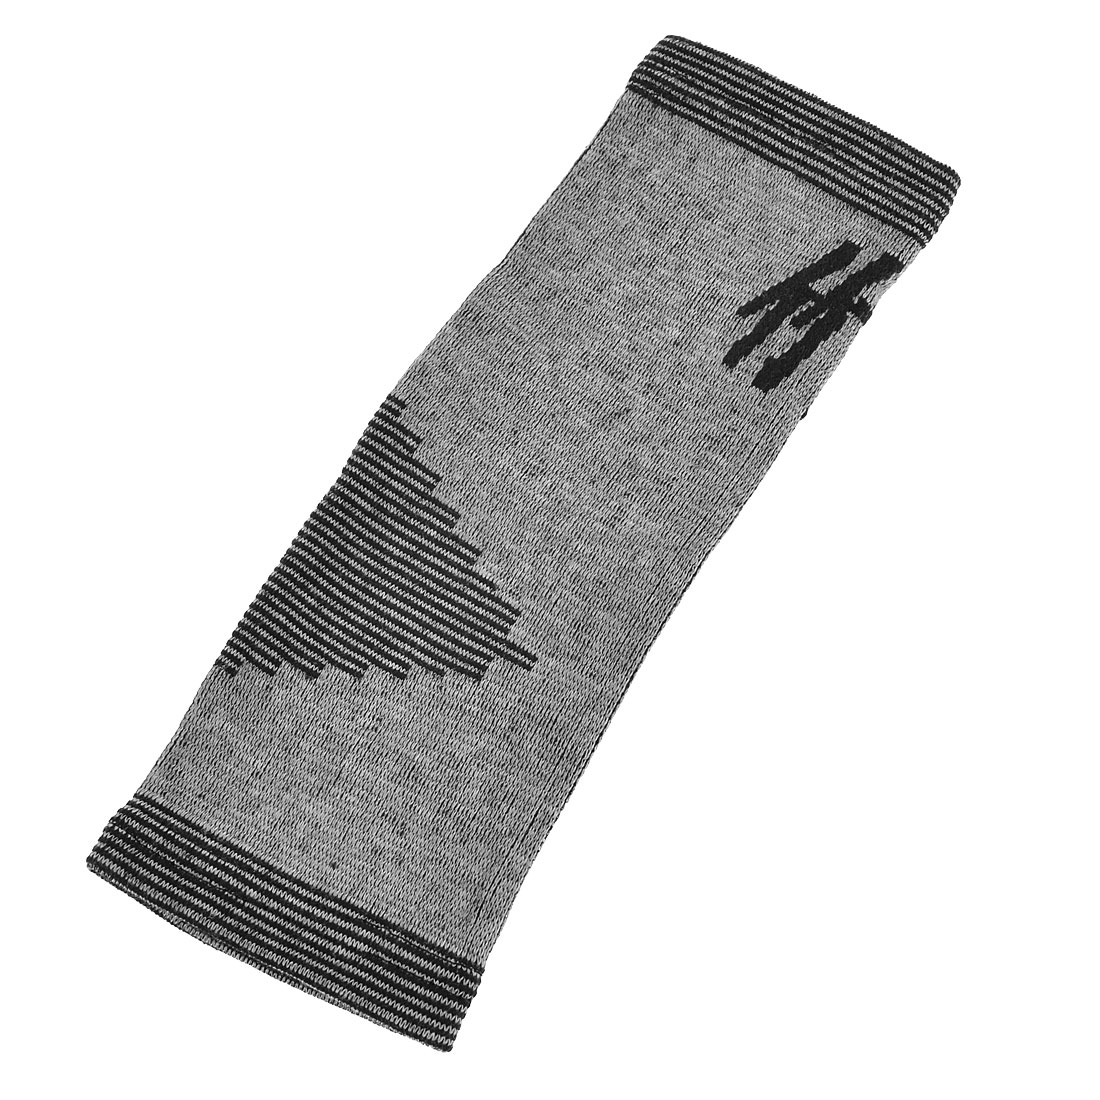 Mini Checker Pattern Ankle Stretch Sleeve Support Black Gray